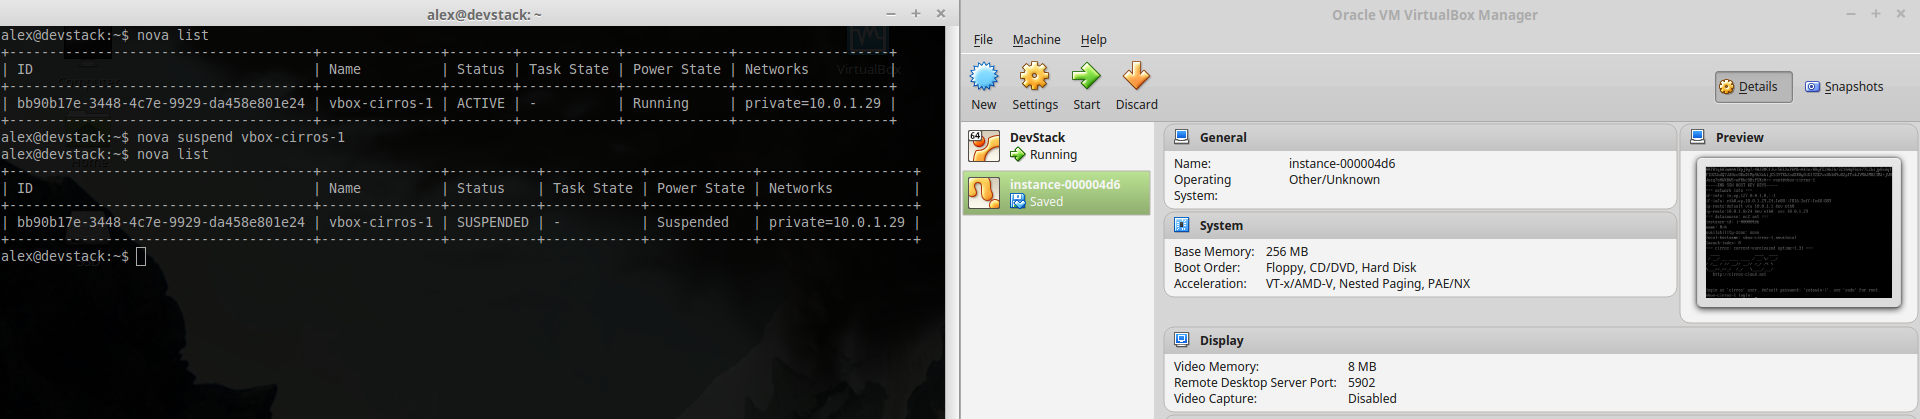 VirtualBox driver for OpenStack - Cloudbase Solutions